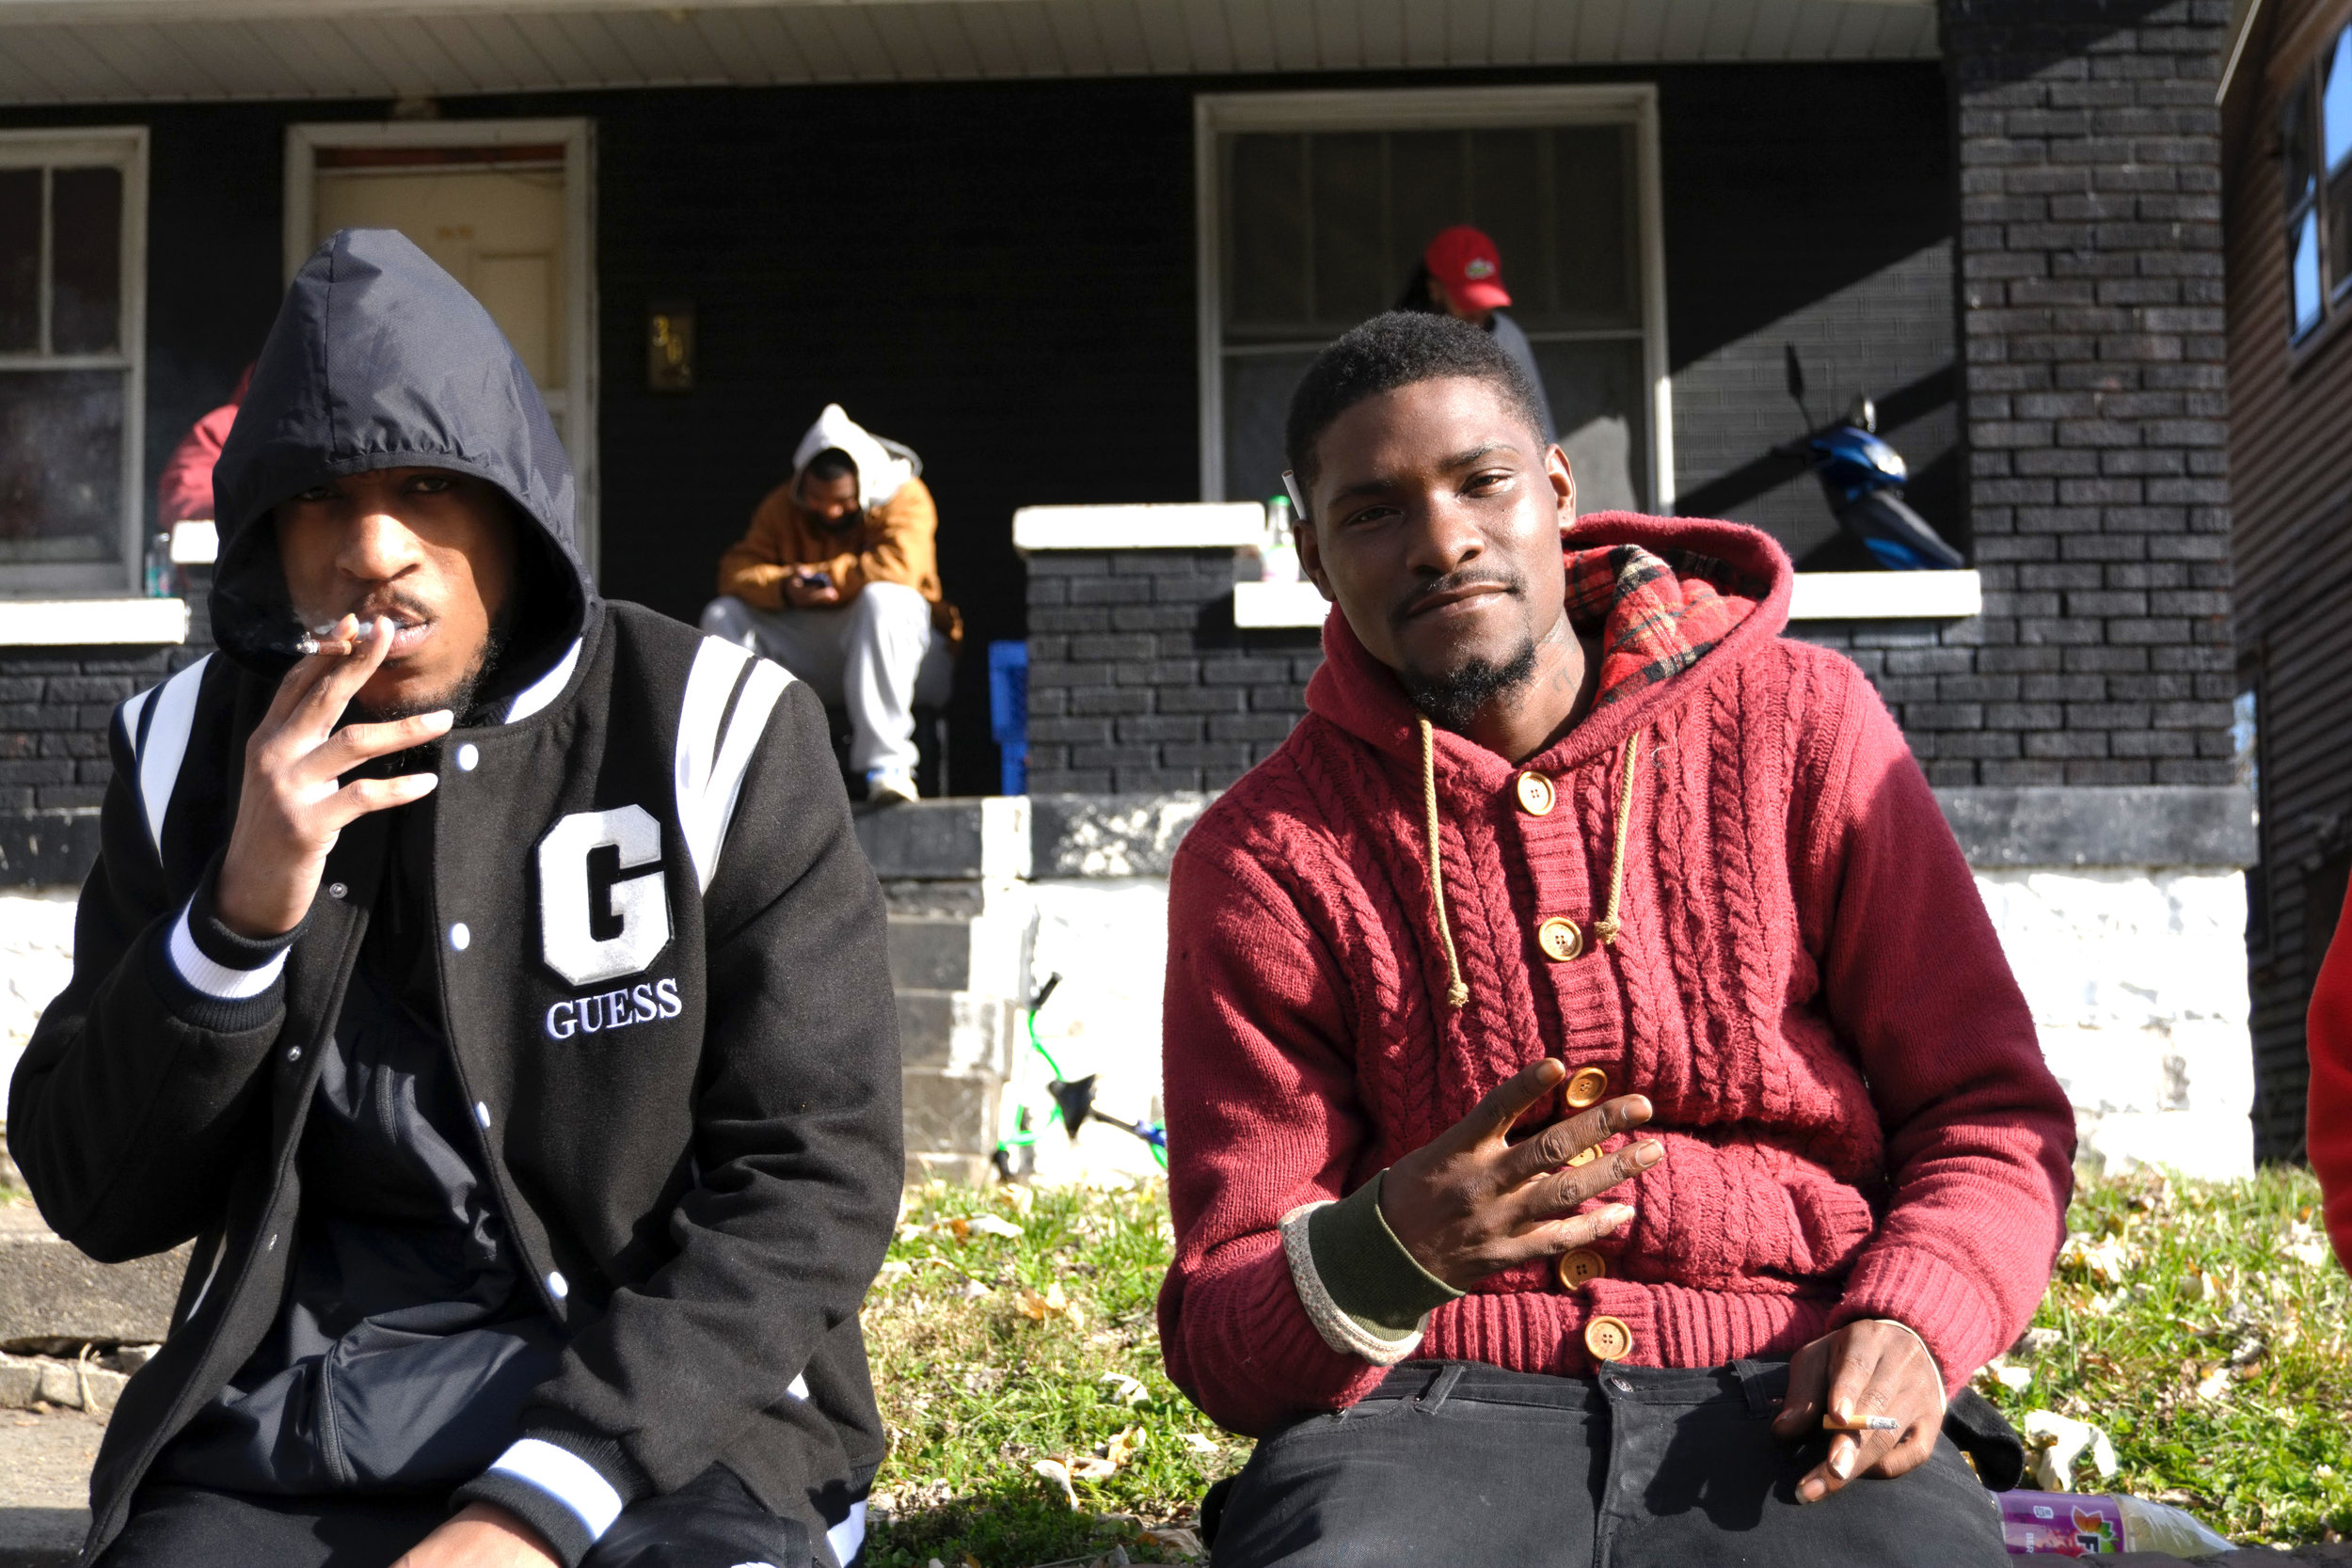 """""""We all we got. Everybody needs to stay positive and do the right things and hope that it spreads around. With all these killings and all that, we just got to come together. If we wanna move forward, we all got to come together."""" - Woo & Brandon, Shawnee"""